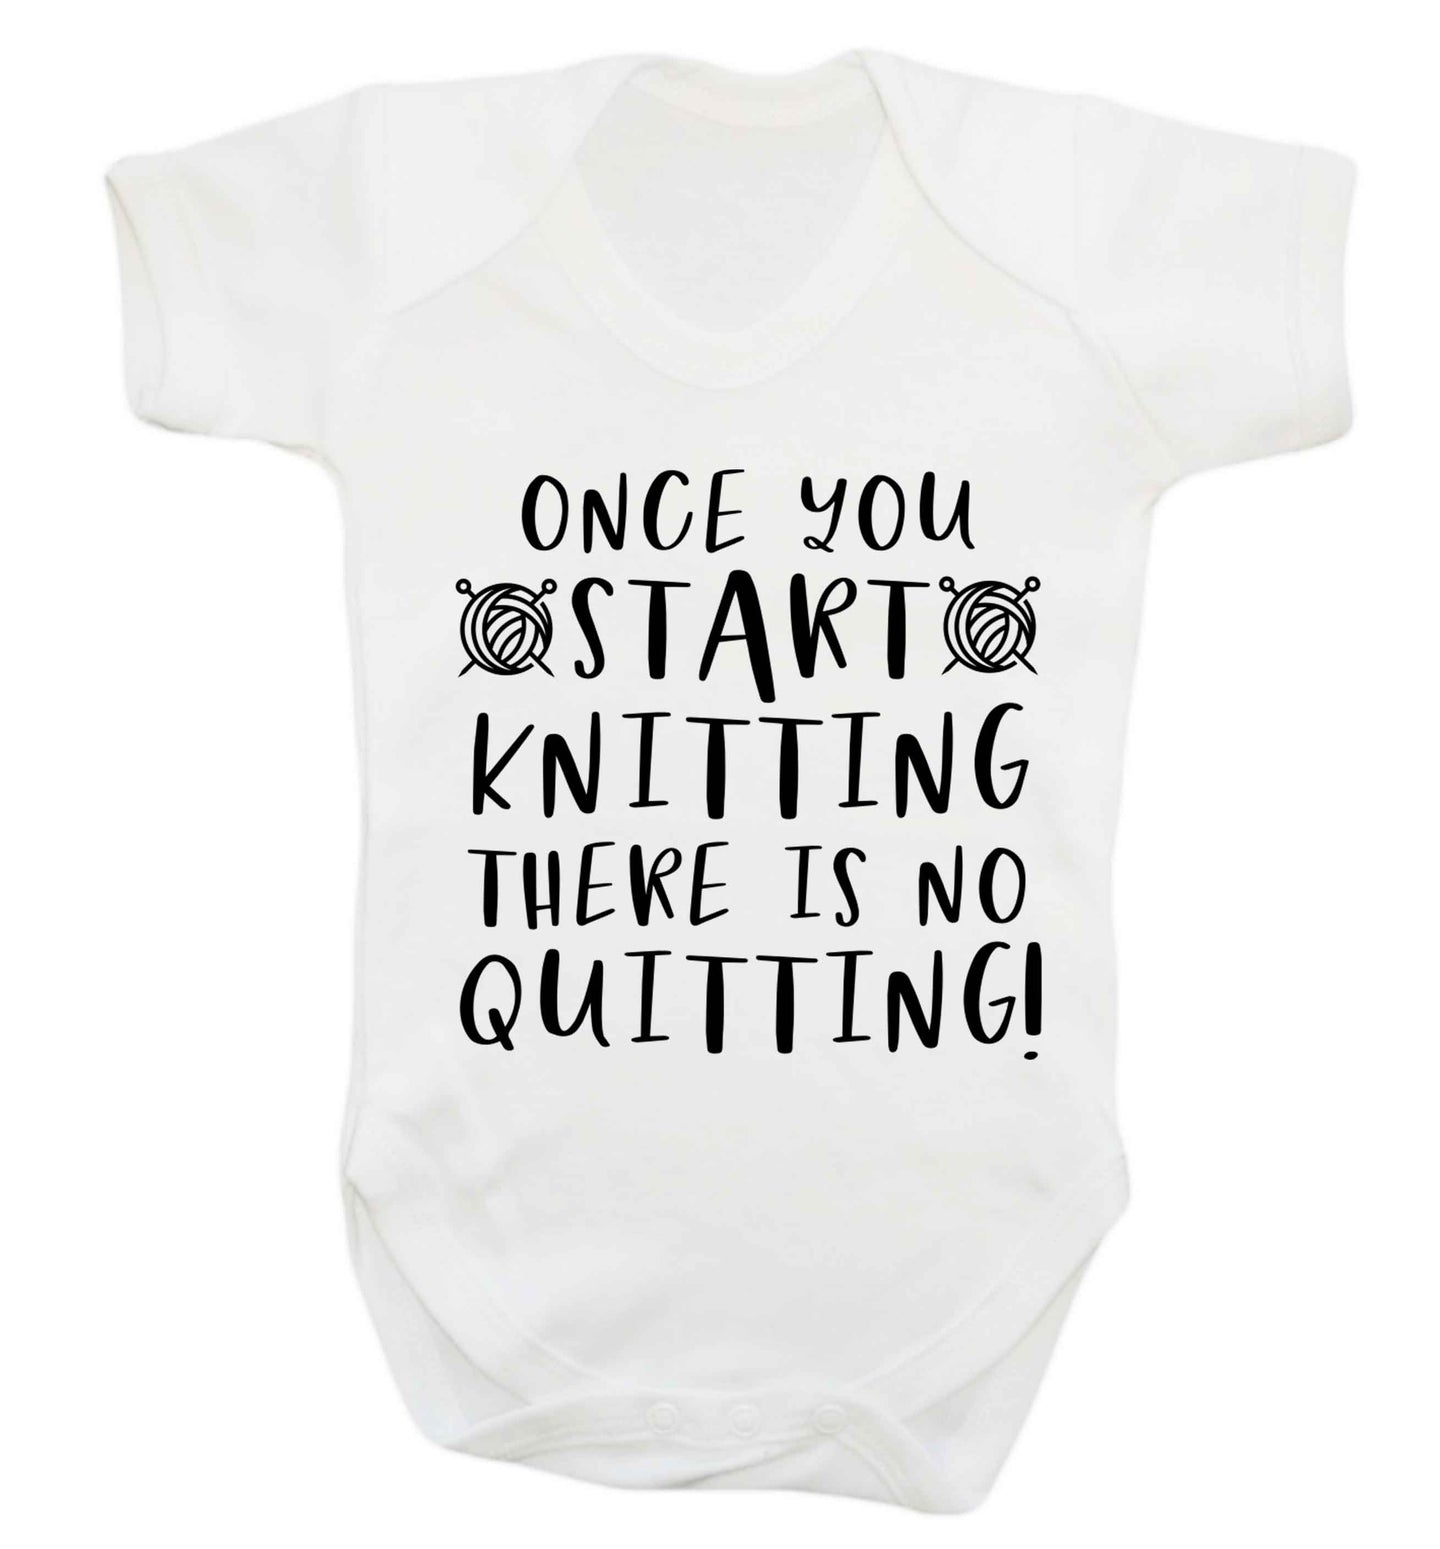 Once you start knitting there is no quitting! Baby Vest white 18-24 months